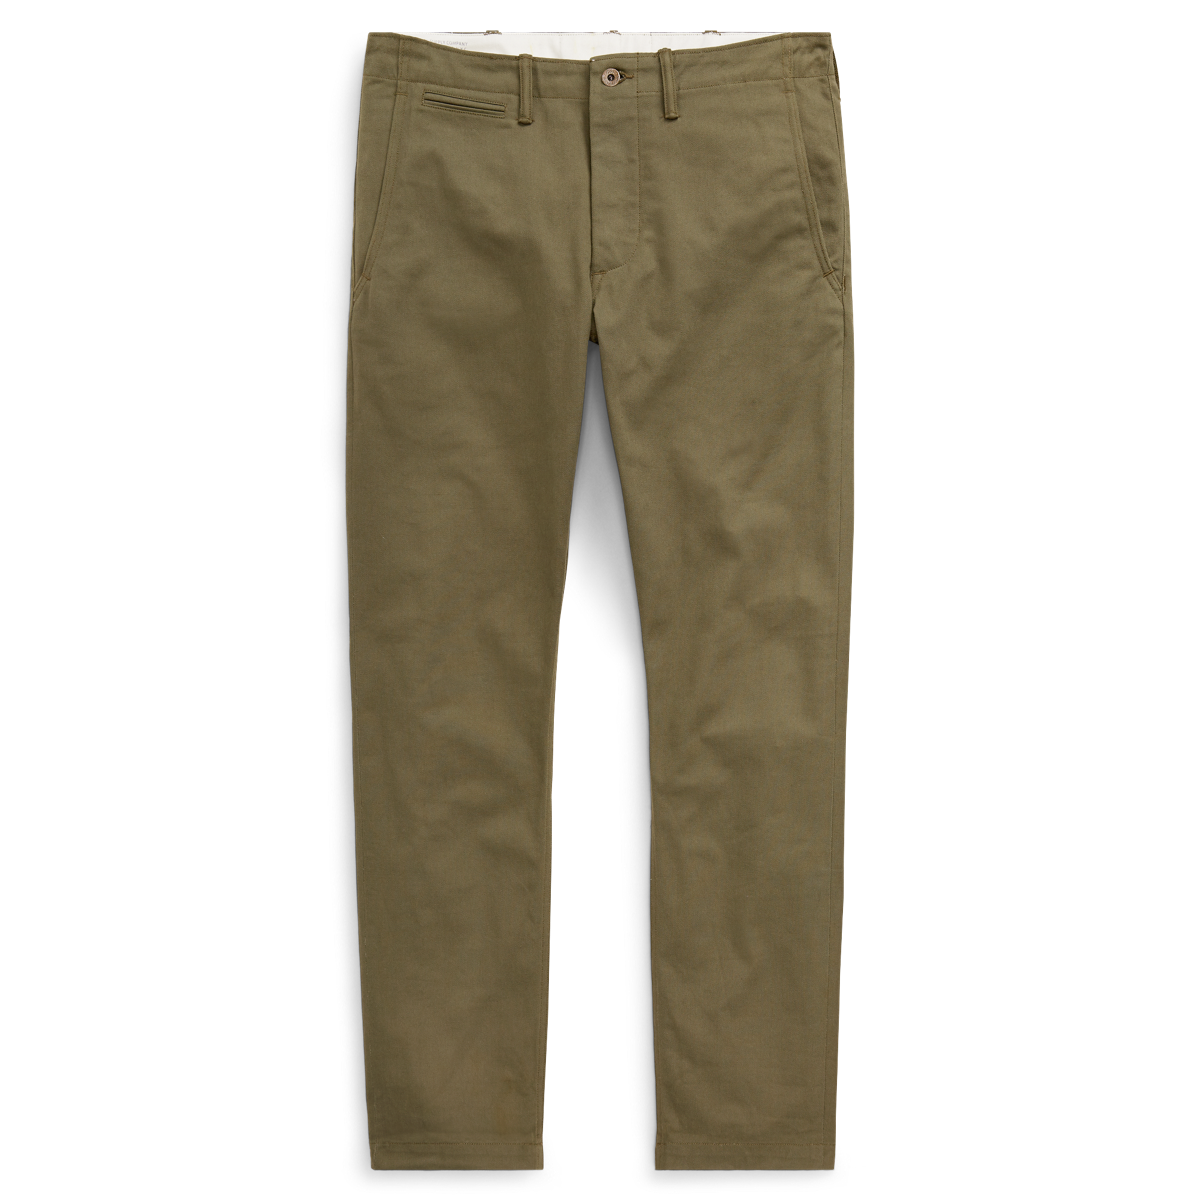 2fd0449155 Tapered Fit Selvedge Chino